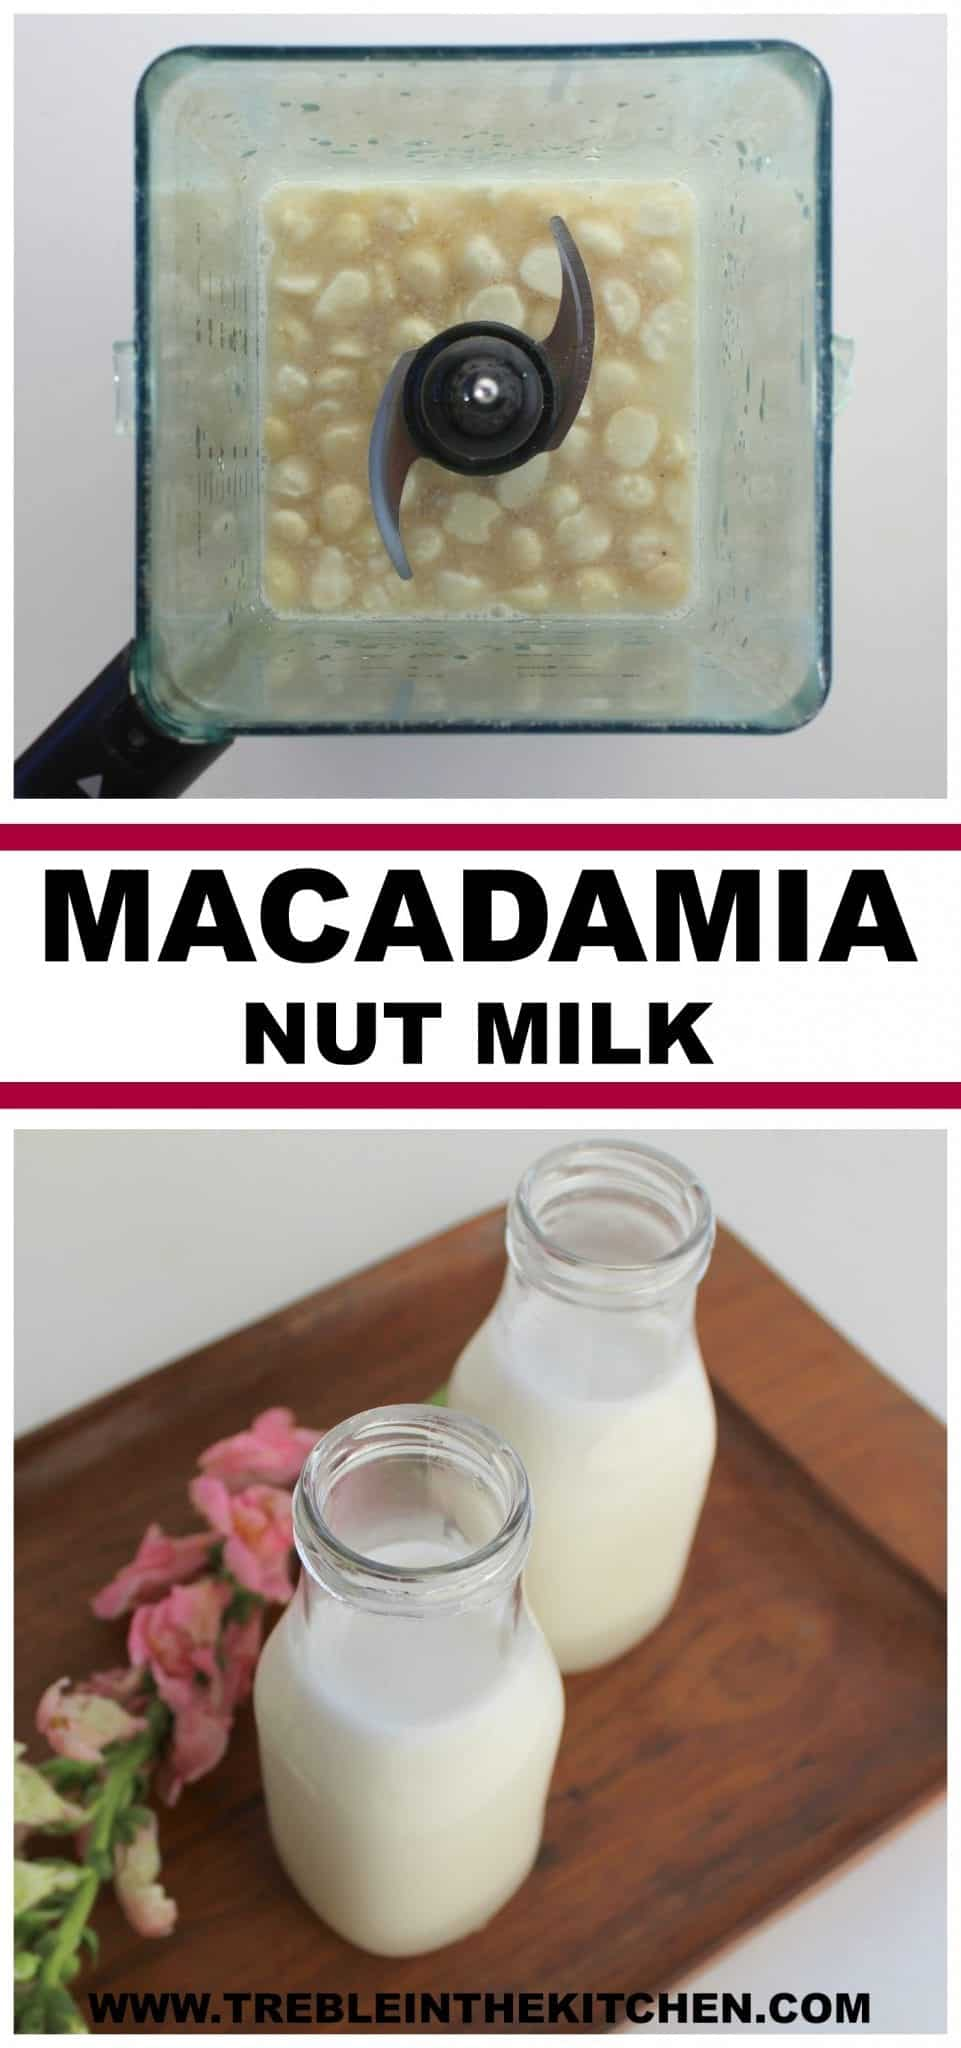 Macadamia nut milk from treble in the kitchen